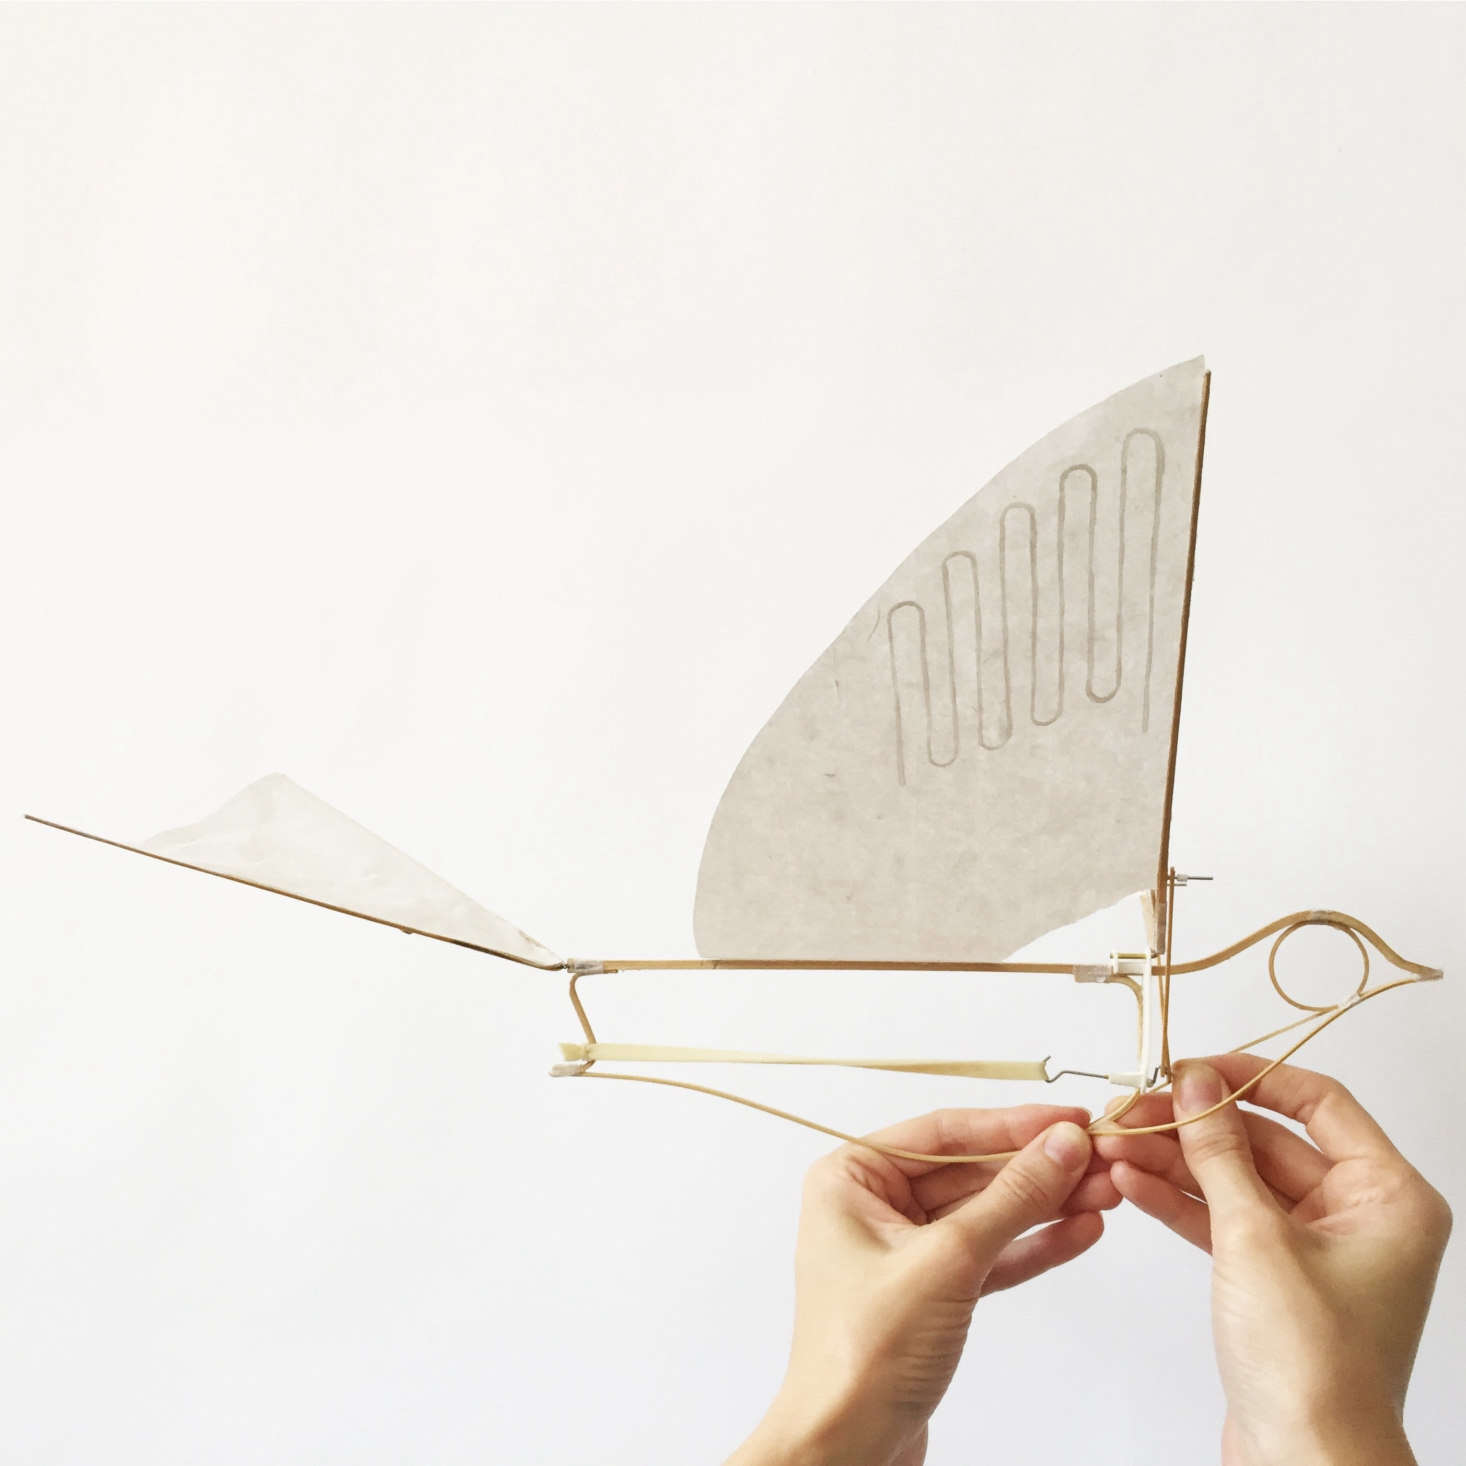 """Margot likesHaptic Lab's Flying Martha Ornithopter, """"a bamboo bird that's launched like a paper airplane. Who wouldn't want that?"""" she asks. It's made of bamboo and mulberry paper, launched with a rubber band. It's $48 and comes packed in a gift box."""